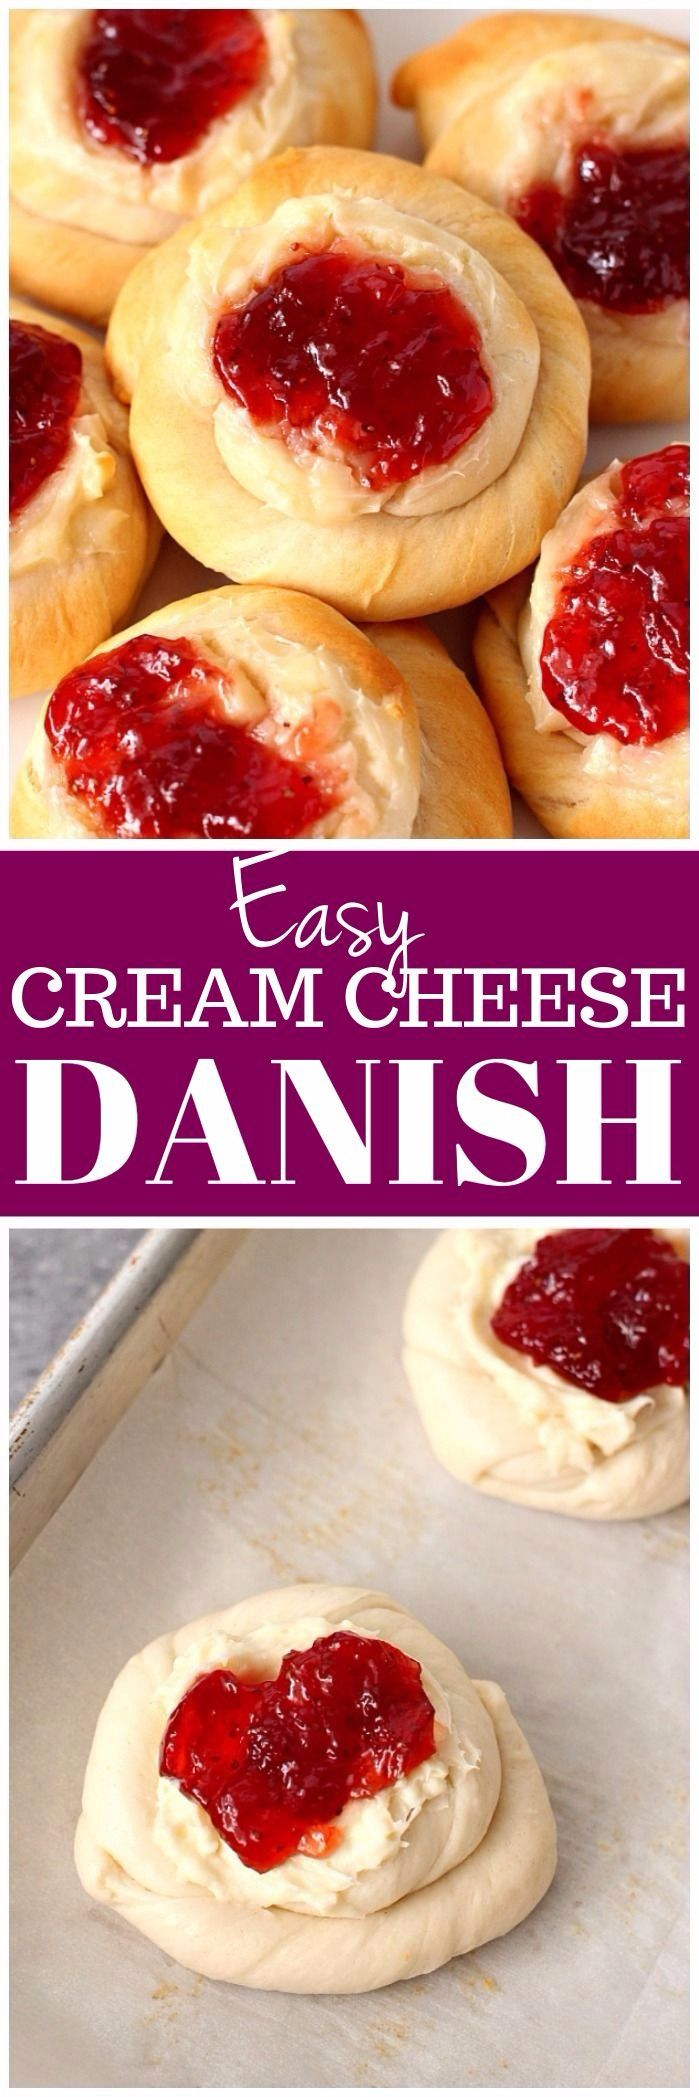 Easy Cream Cheese and Jam Danish Recipe - soft and fluffy pastry with creamy vanilla filling and sweet strawberry jam topping. www.crunchycreamysweet.com